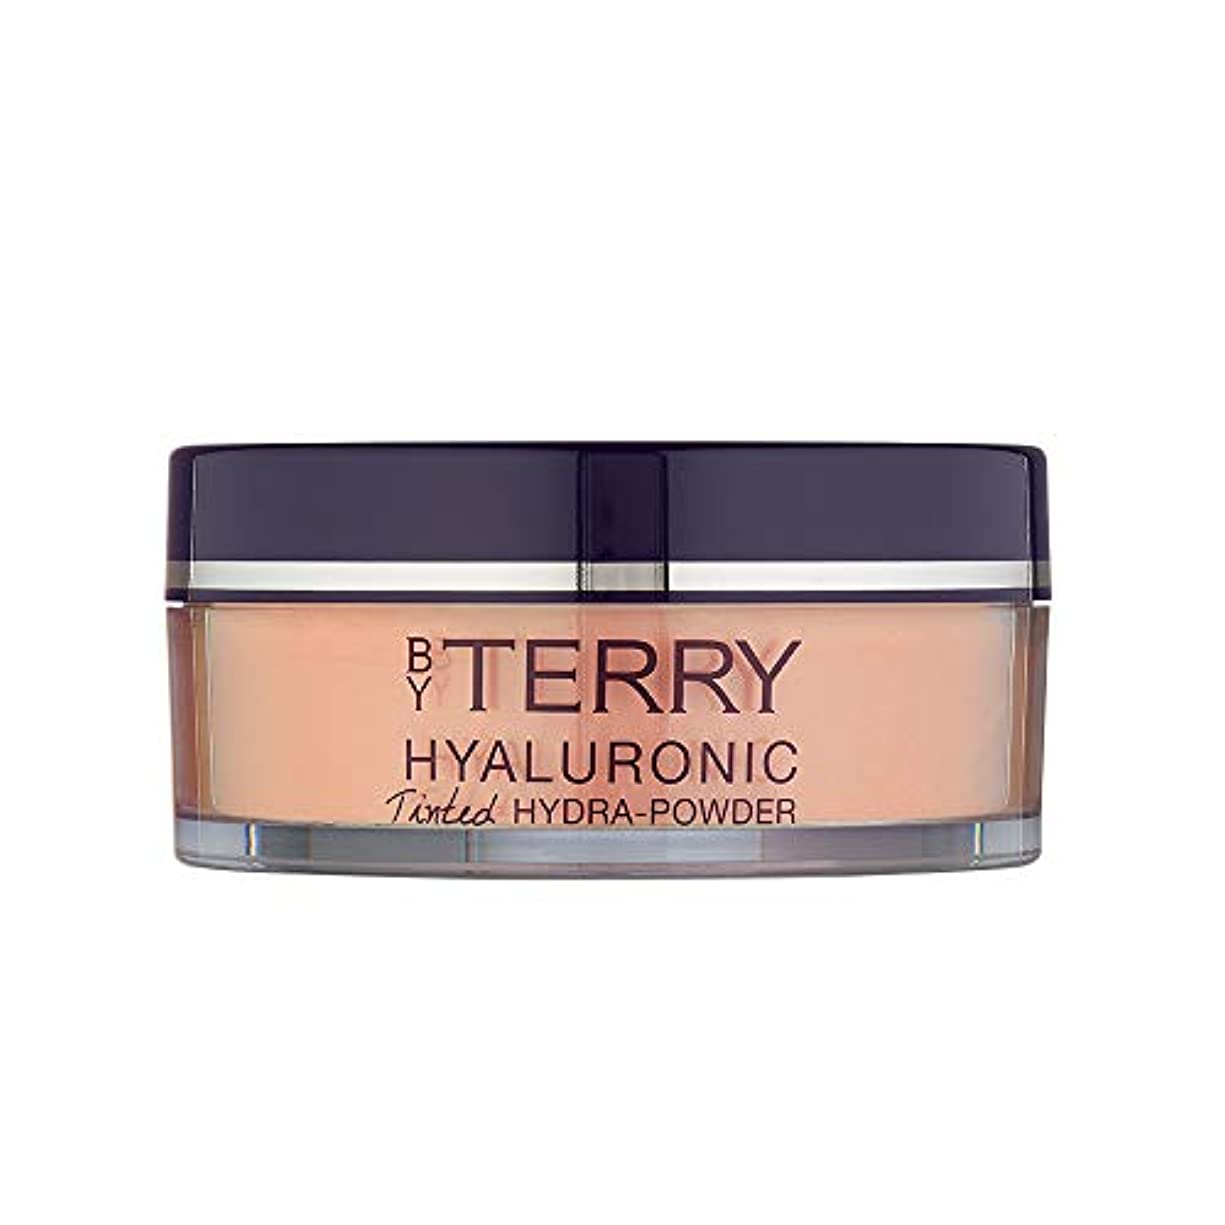 幸運な野望努力するバイテリー Hyaluronic Tinted Hydra Care Setting Powder - # 2 Apricot Light 10g/0.35oz並行輸入品